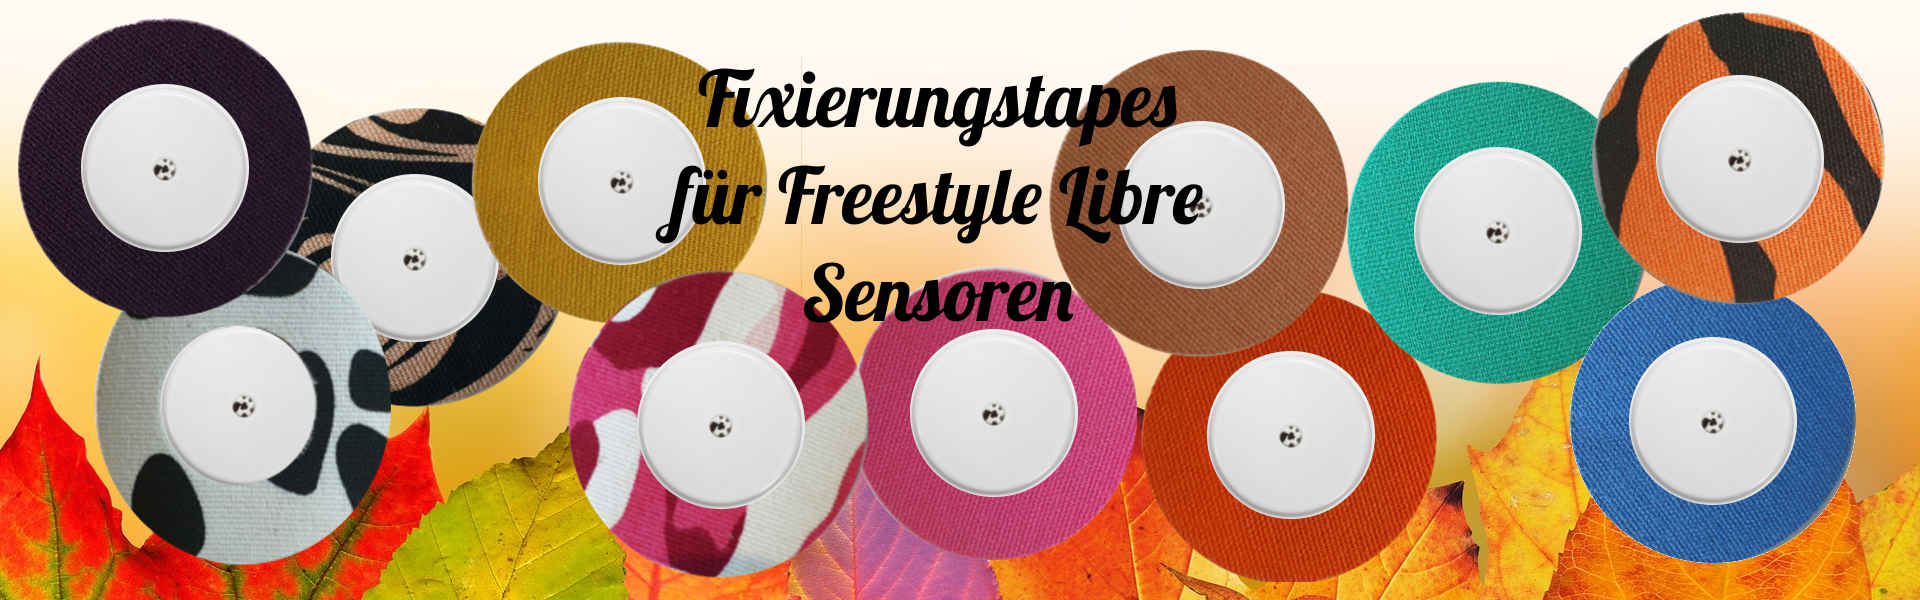 Freestyle Libre Fixierungspflaster